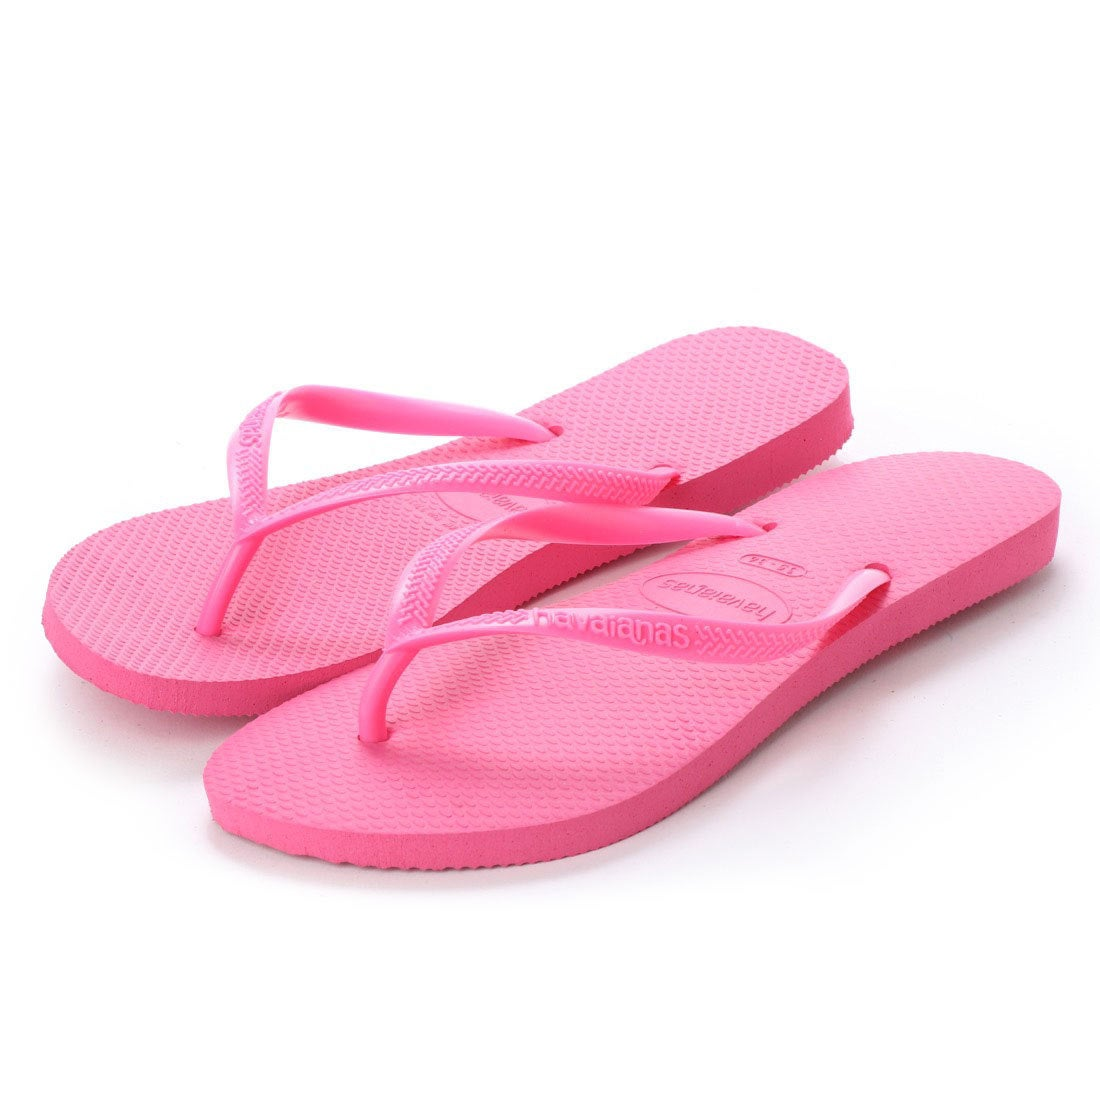 ハワイアナス havaianas SLIM (kids sizes) (shoking pink/shoking pink)